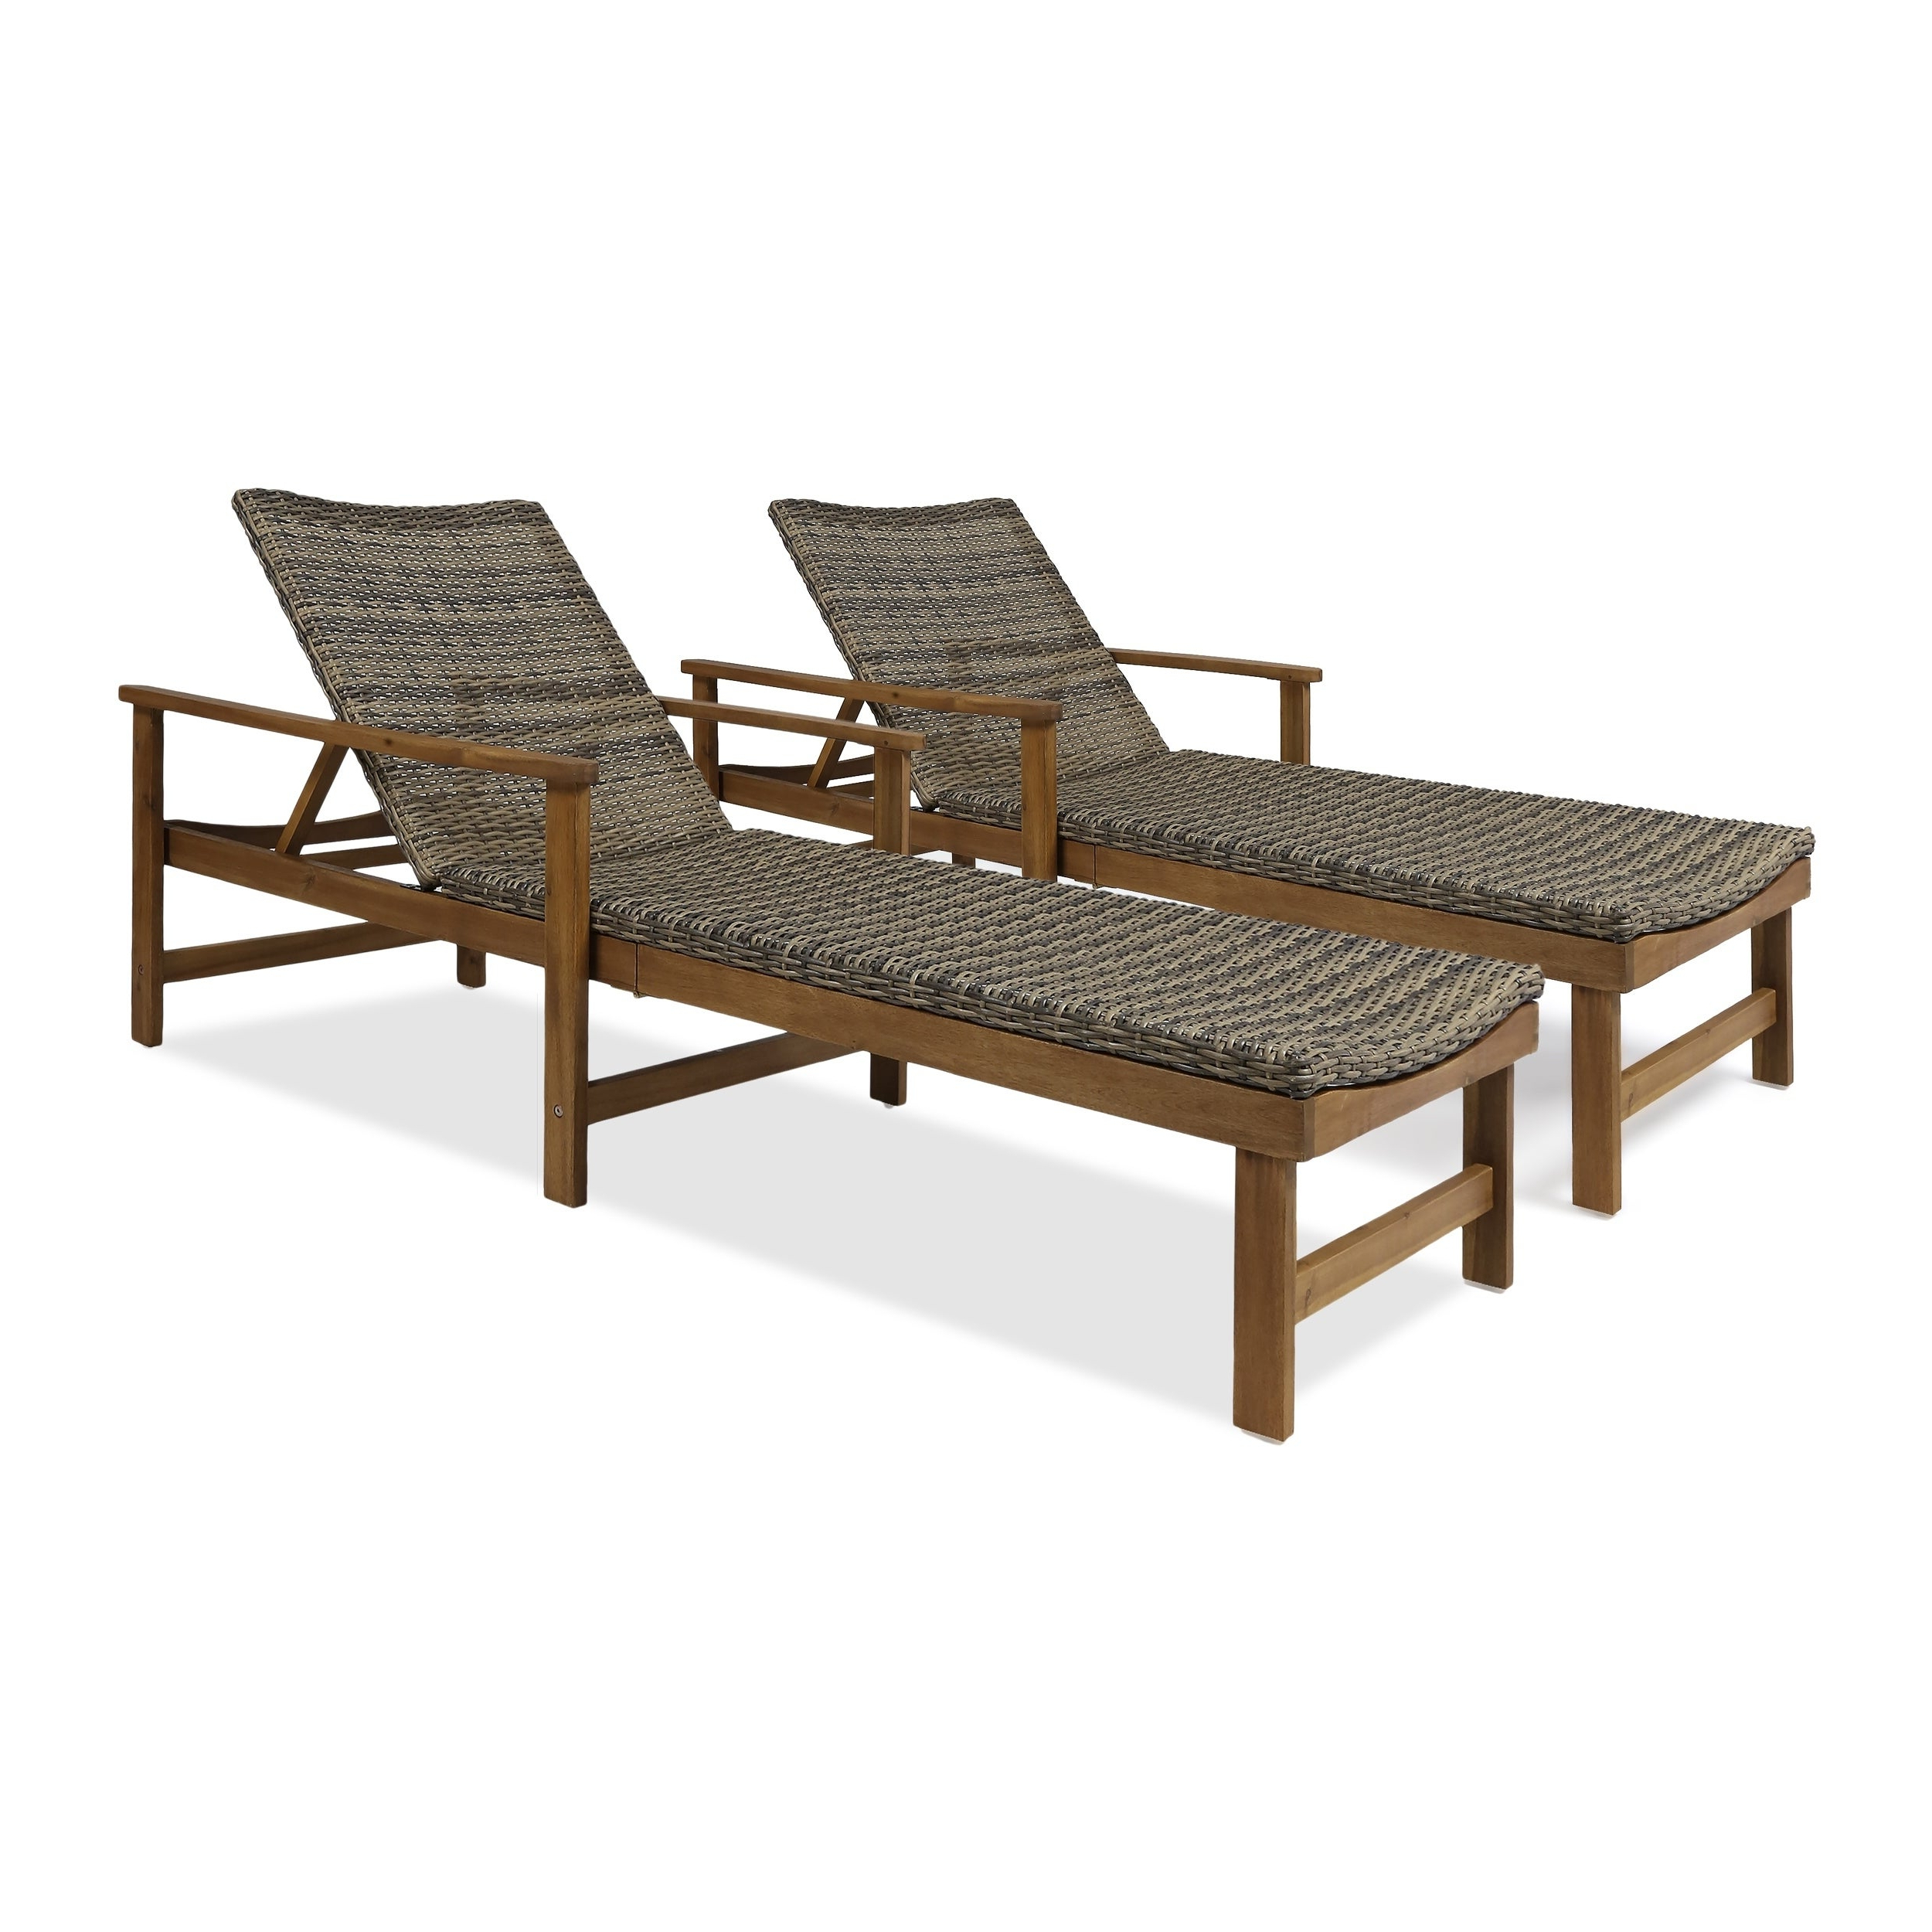 2019 Hampton Outdoor Chaise Lounges Acacia Wood And Wicker (Set Of 2) Christopher Knight Home Within Hampton Outdoor Chaise Lounges Acacia Wood And Wicker (Gallery 3 of 25)